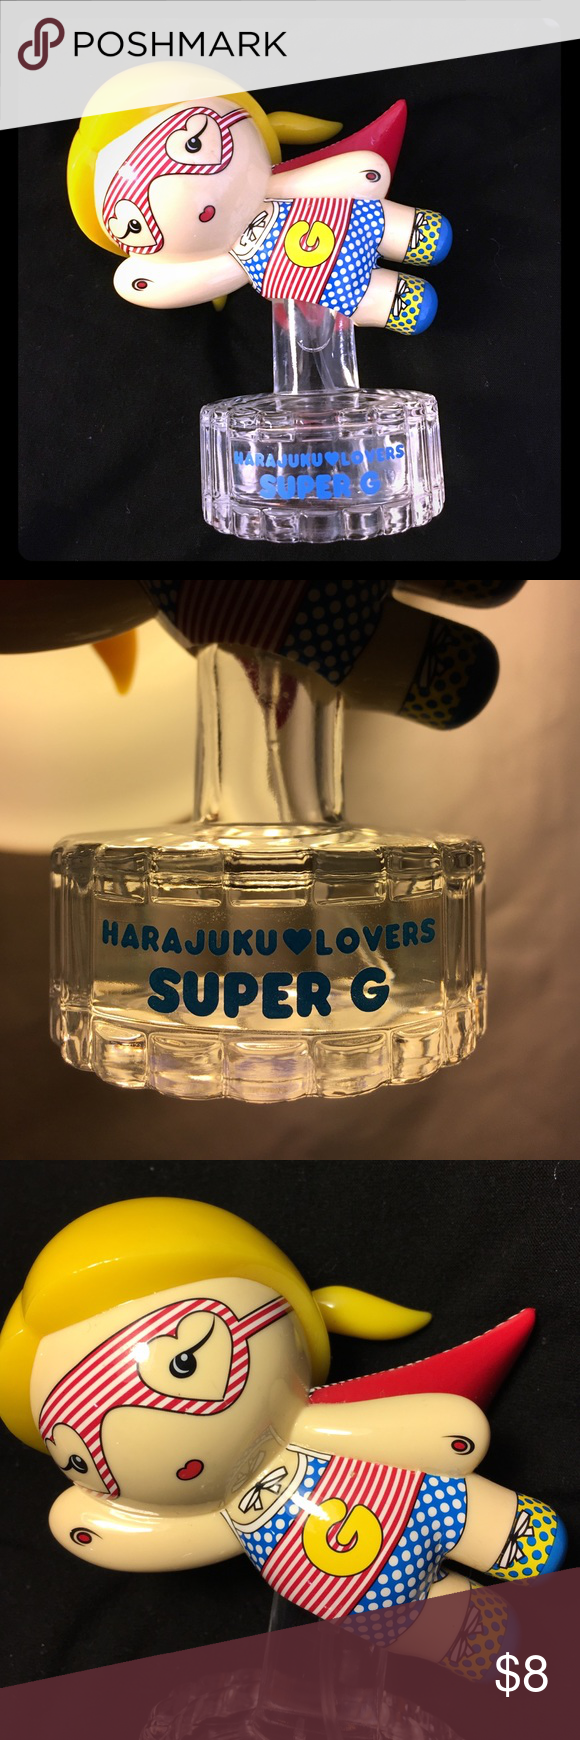 Gwen Stefani Harajuku Lovers Super G perfume ✨ This is a LIMITED EDITION Perfume!! Don't have the box but it was rarely used. Little scruff near the G of the bottle but not noticeable. Adorable to have sitting anywhere in your room ✨✨✨ Harajuku Lovers Other